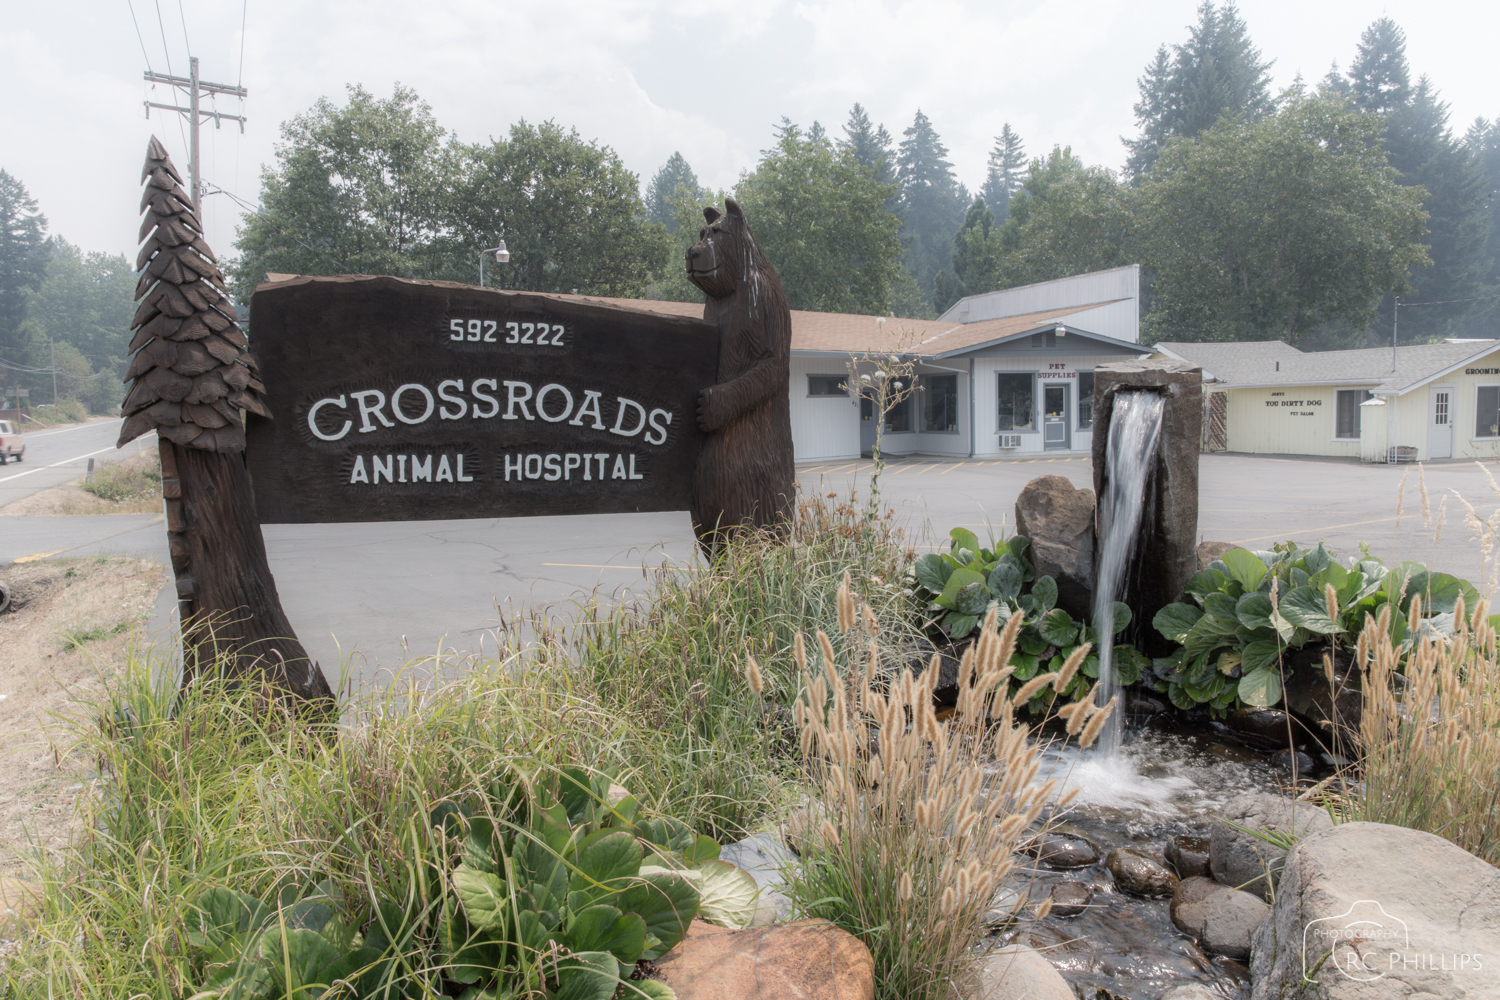 1/25 Sec. @ f/22 and ISO 100  Dan Fiske owned and operated this animal hospital.